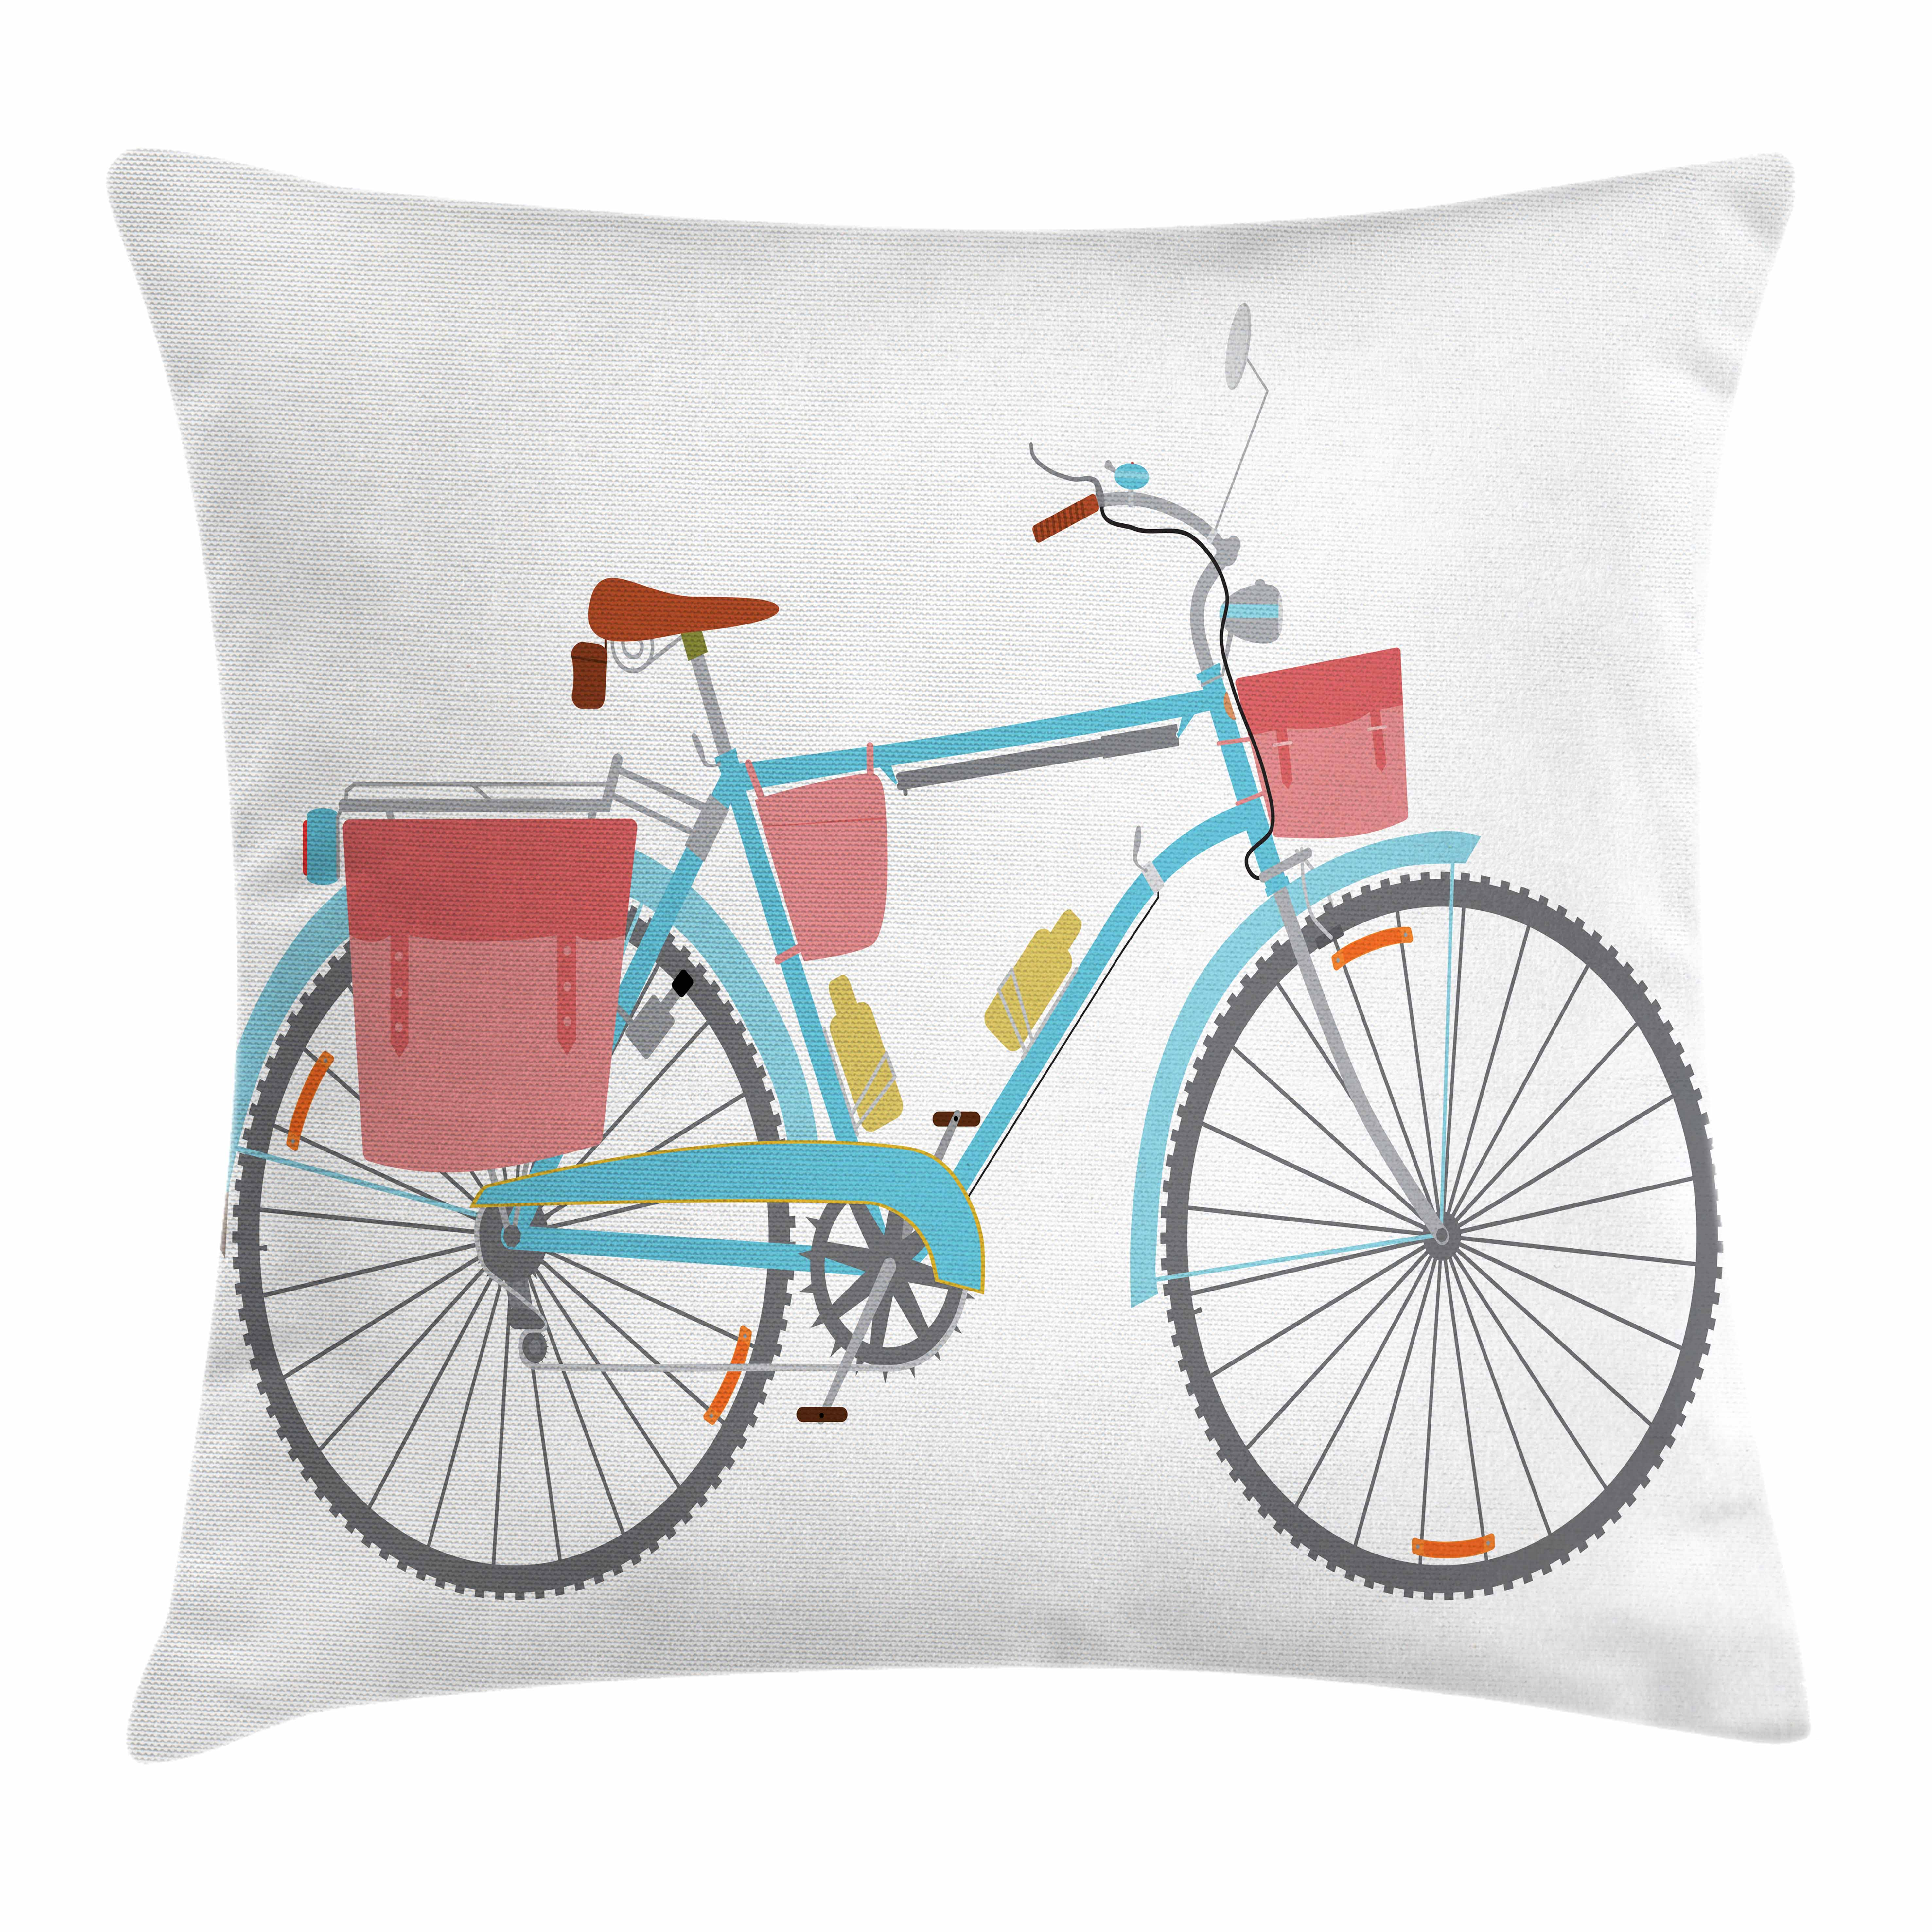 Bicycle Throw Pillow Cushion Cover, Classic Touring Bike with Derailleur and Saddlebags Healthy Active Lifestyle Travel, Decorative Square Accent Pillow Case, 16 X 16 Inches, Multicolor, by Ambesonne